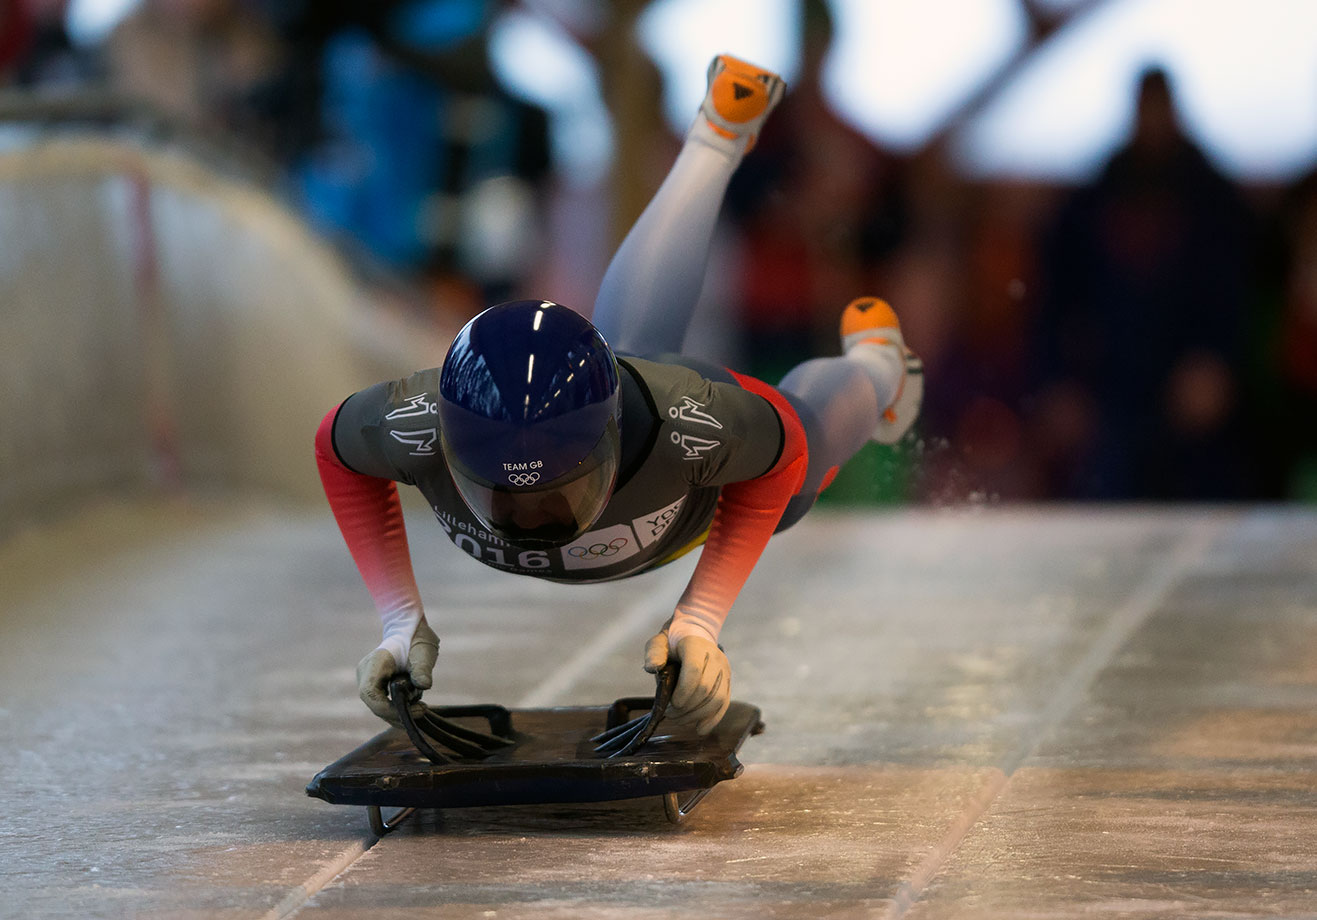 Ashleigh Fay Pittaway (GBR) competes in the Women's Individual Skeleton at Lillehammer Olympic Sliding Centre on Feb. 19, 2016 during the Winter Youth Olympic Games in Lillehammer, Norway.